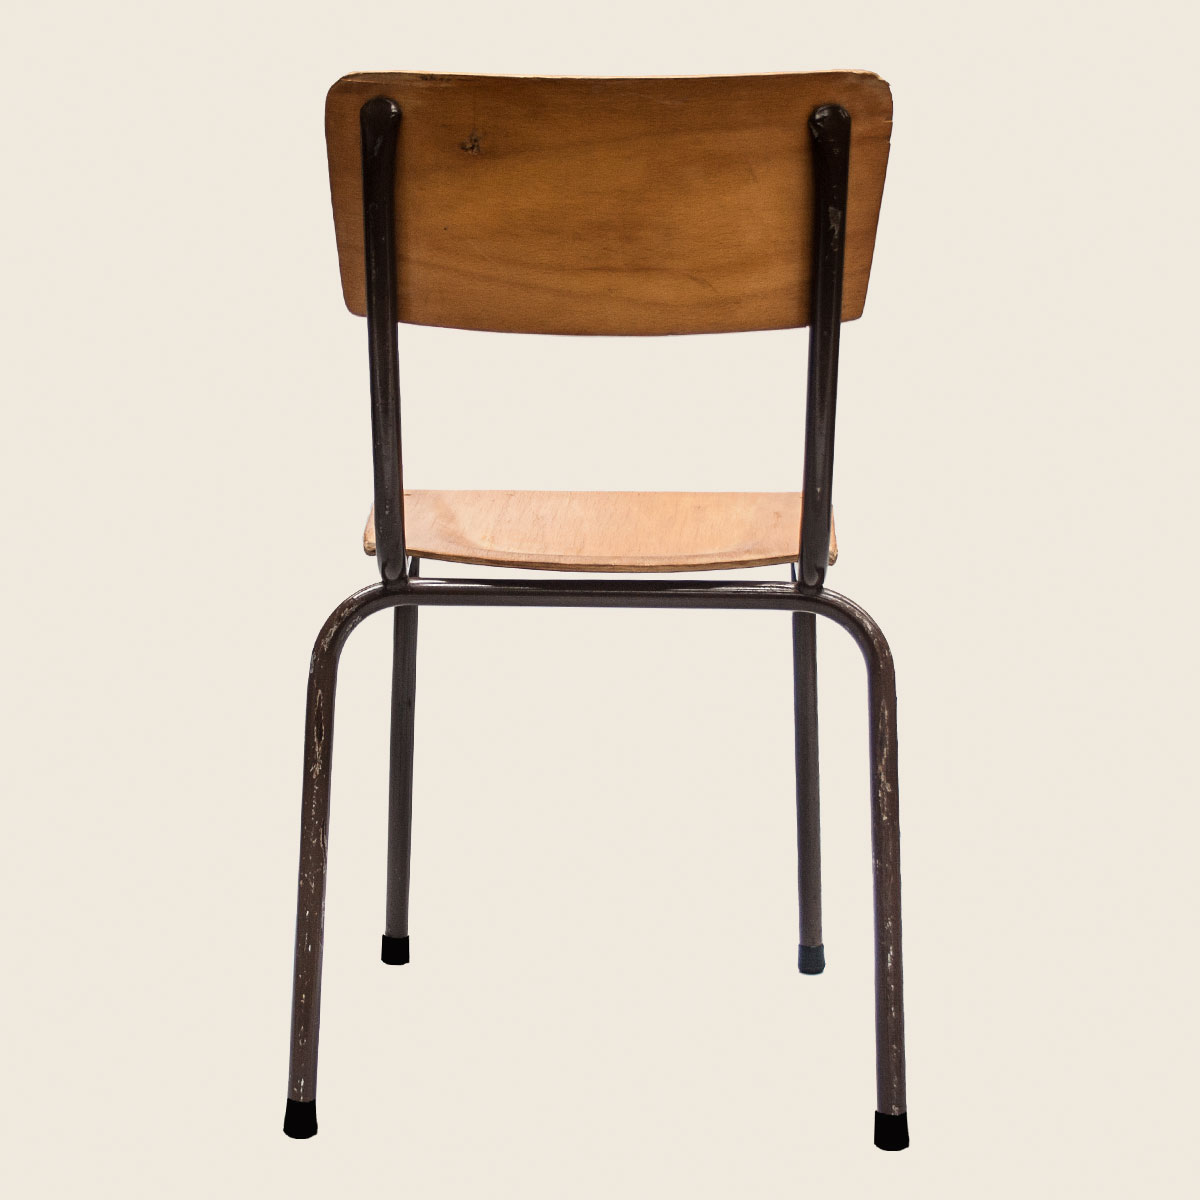 Vintage Stacking School Chairs Vintage Matters